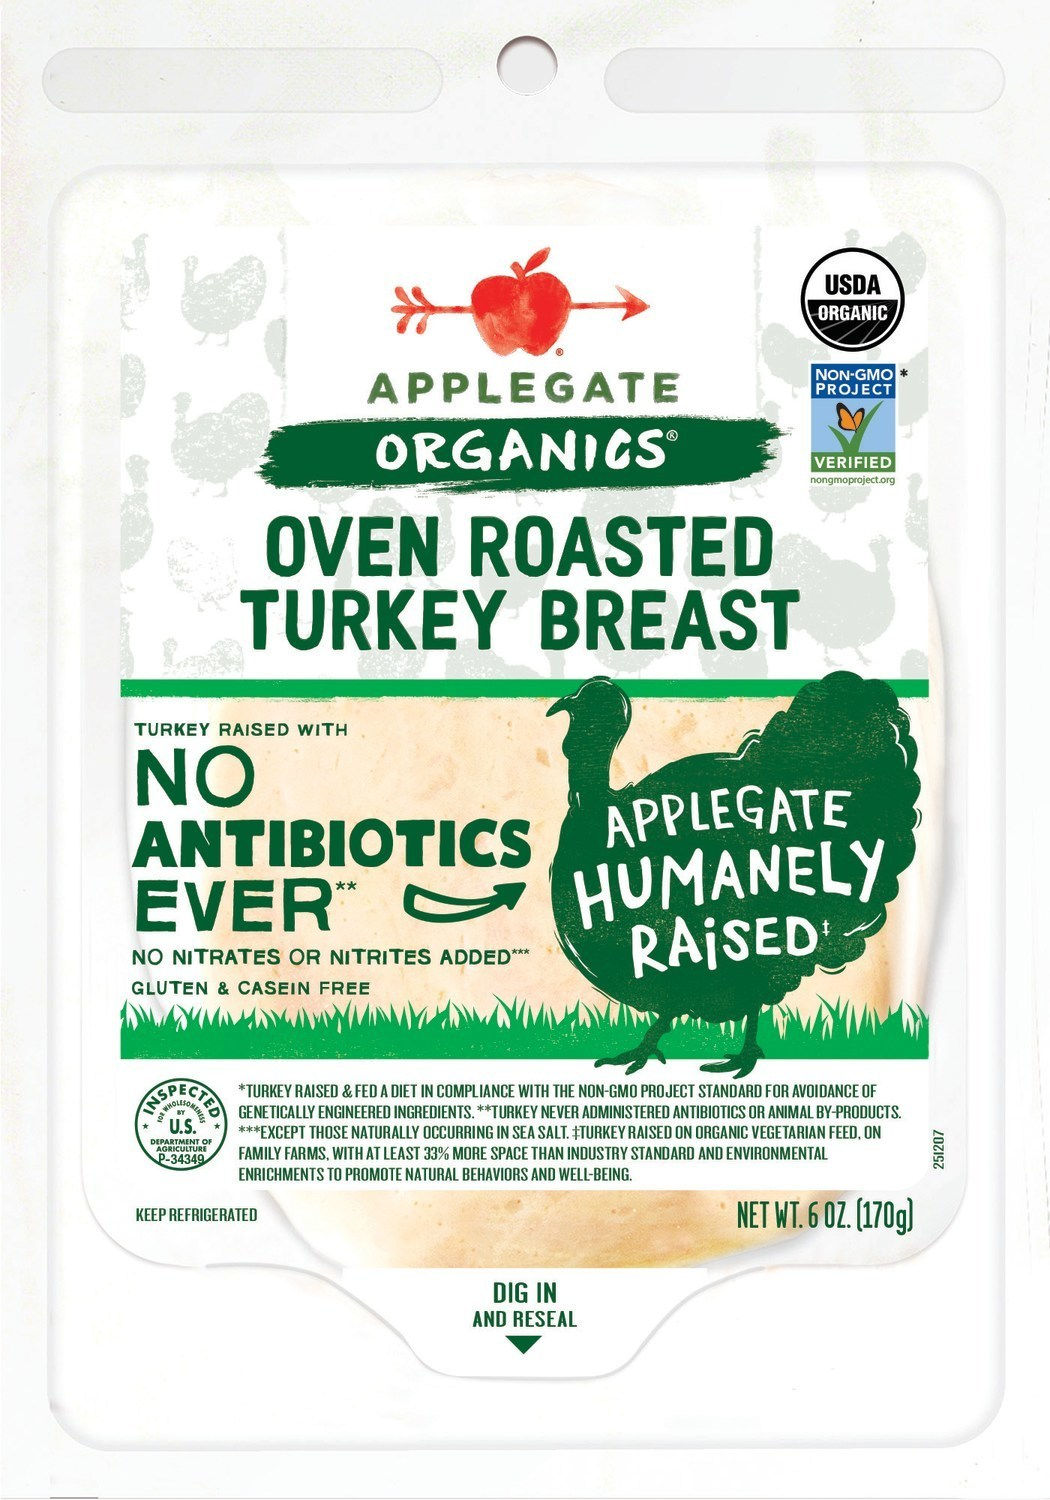 Applegate Updates Deli Meat Ingredients and Packaging